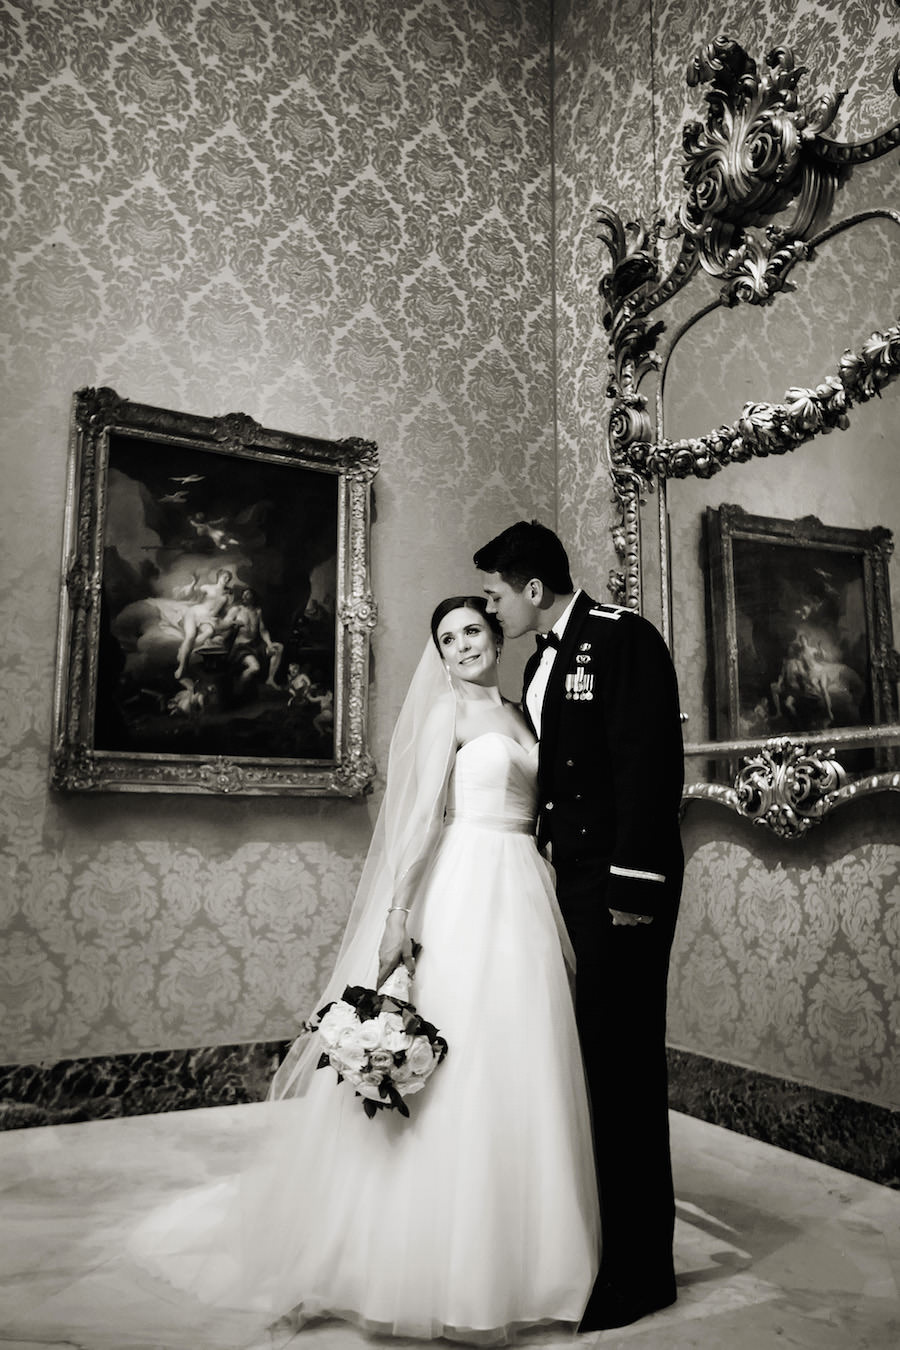 Military Bride and Groom Wedding Portrait at Unique Downtown St. Pete Wedding Venue Museum of Fine Arts Wedding Venue | St. Petersburg Wedding Photographer Limelight Photography